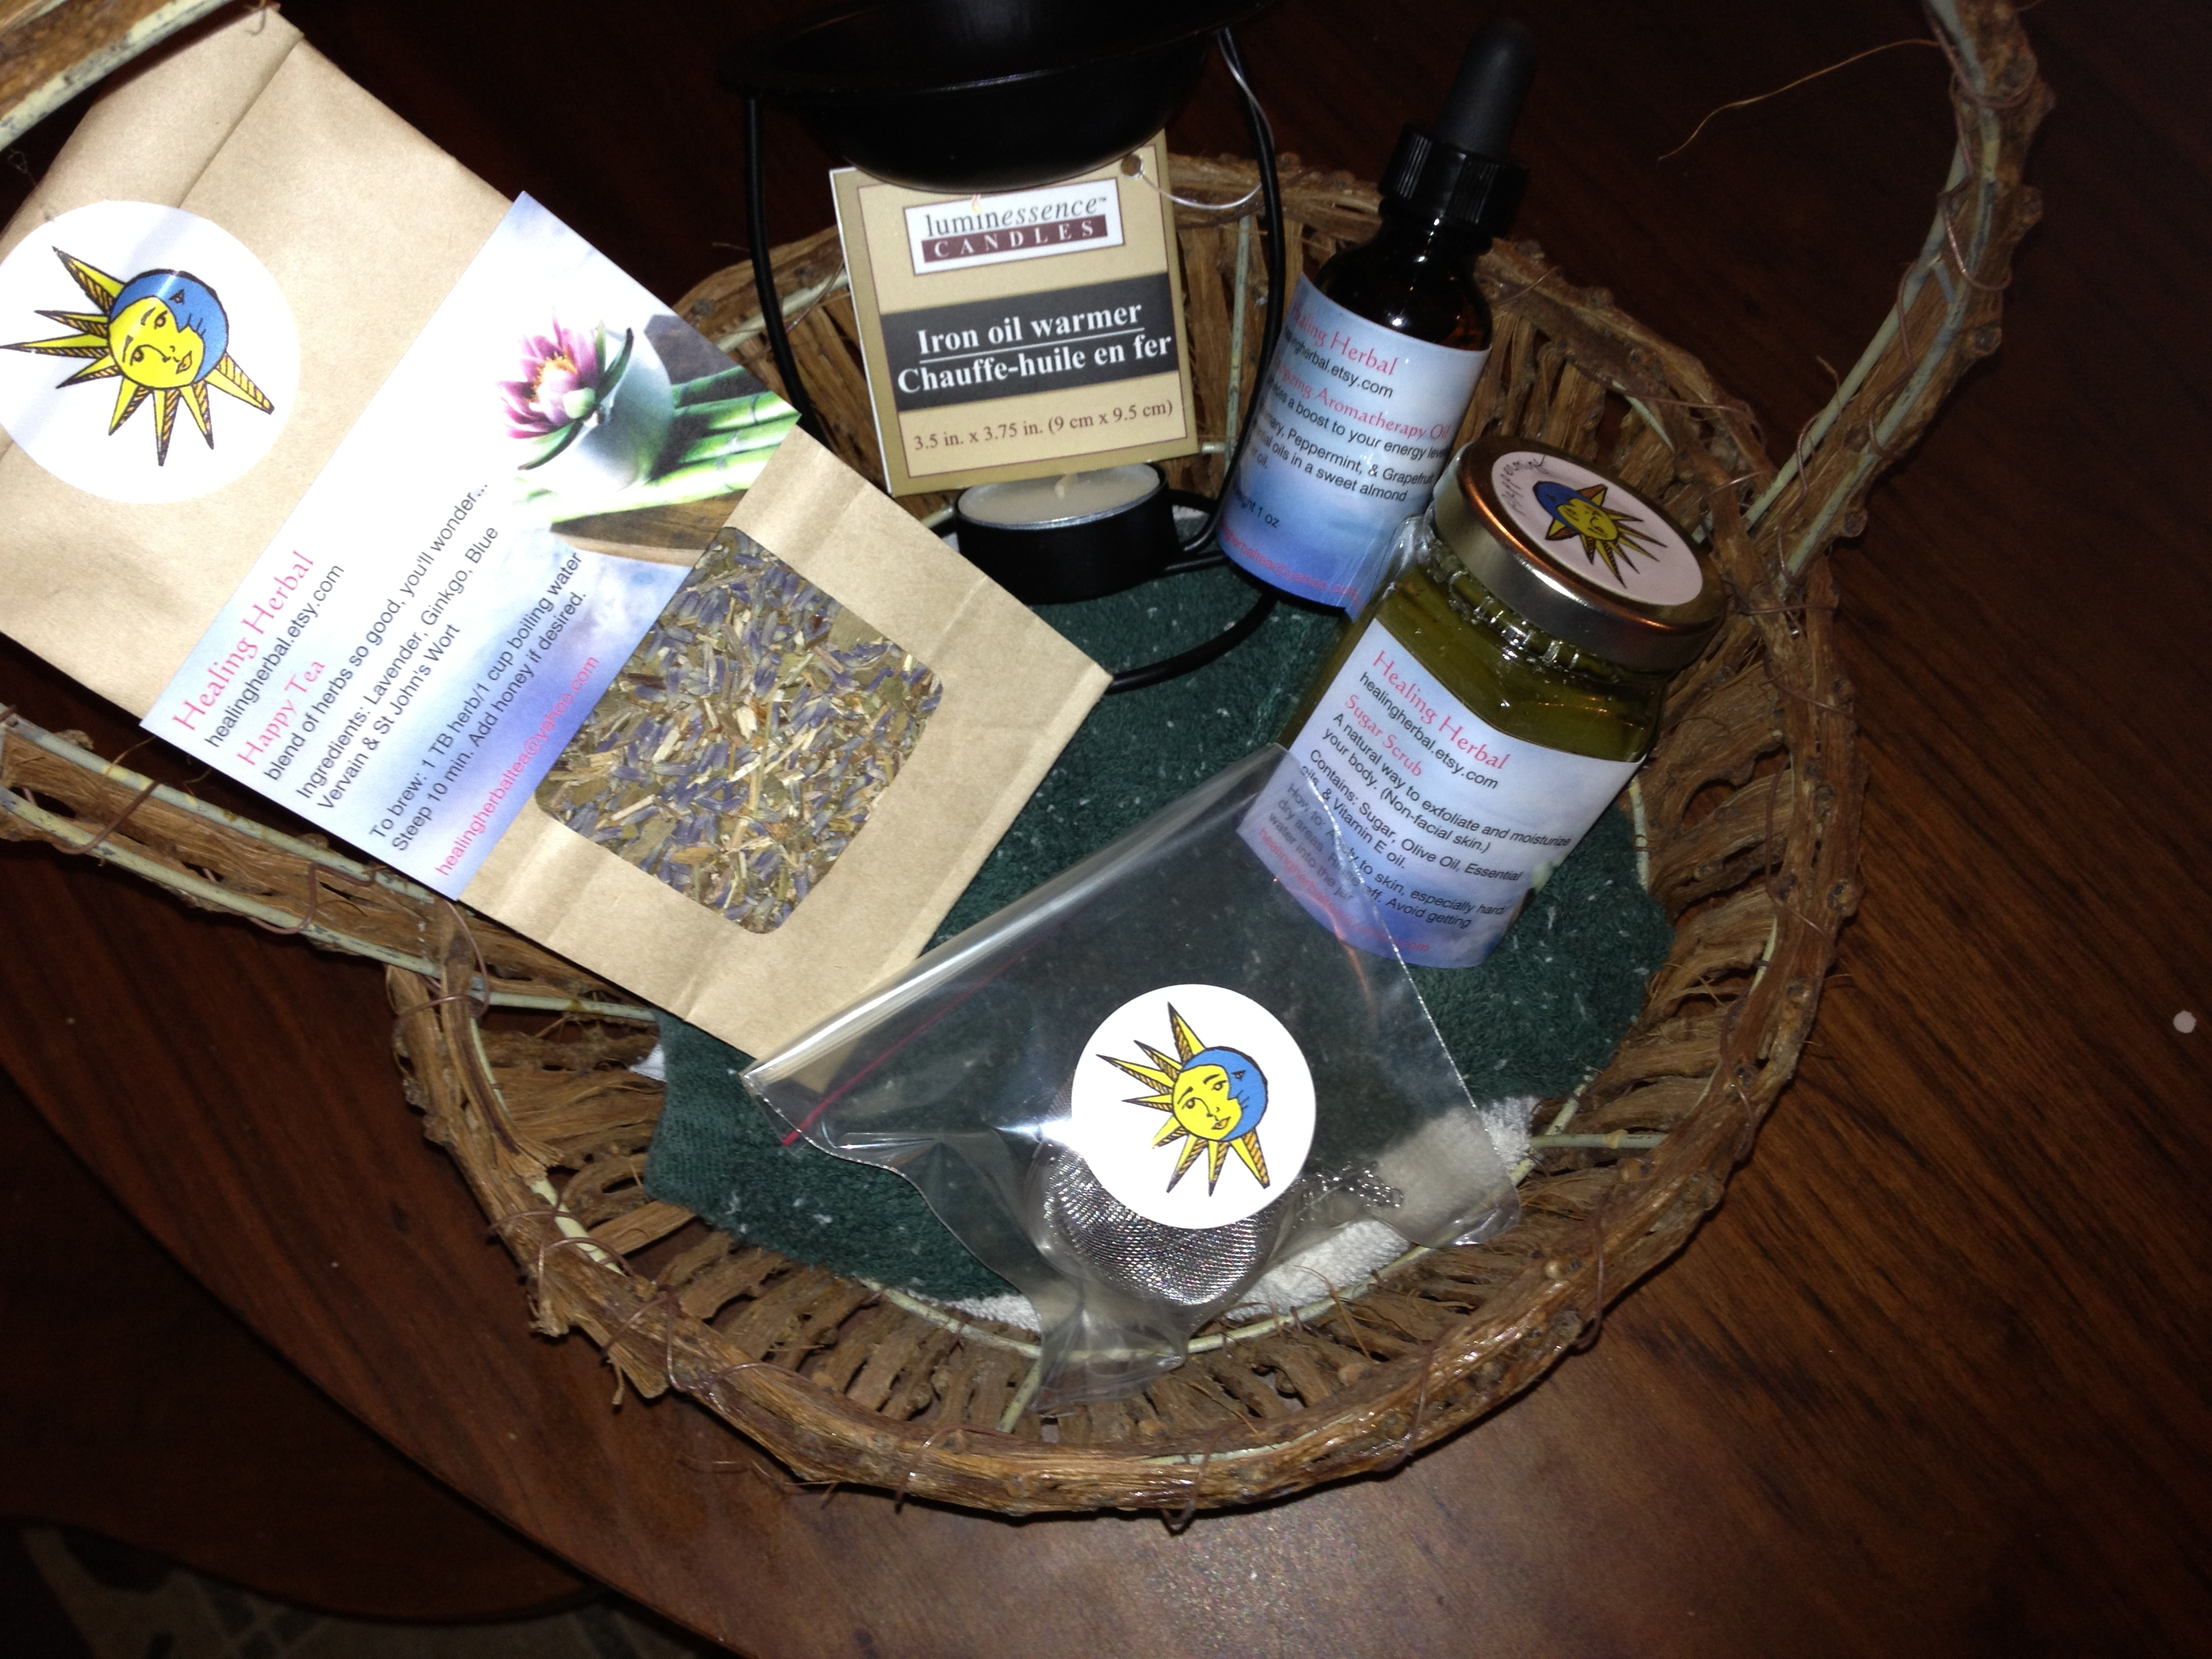 Best Gift Ever from Healing Herbal